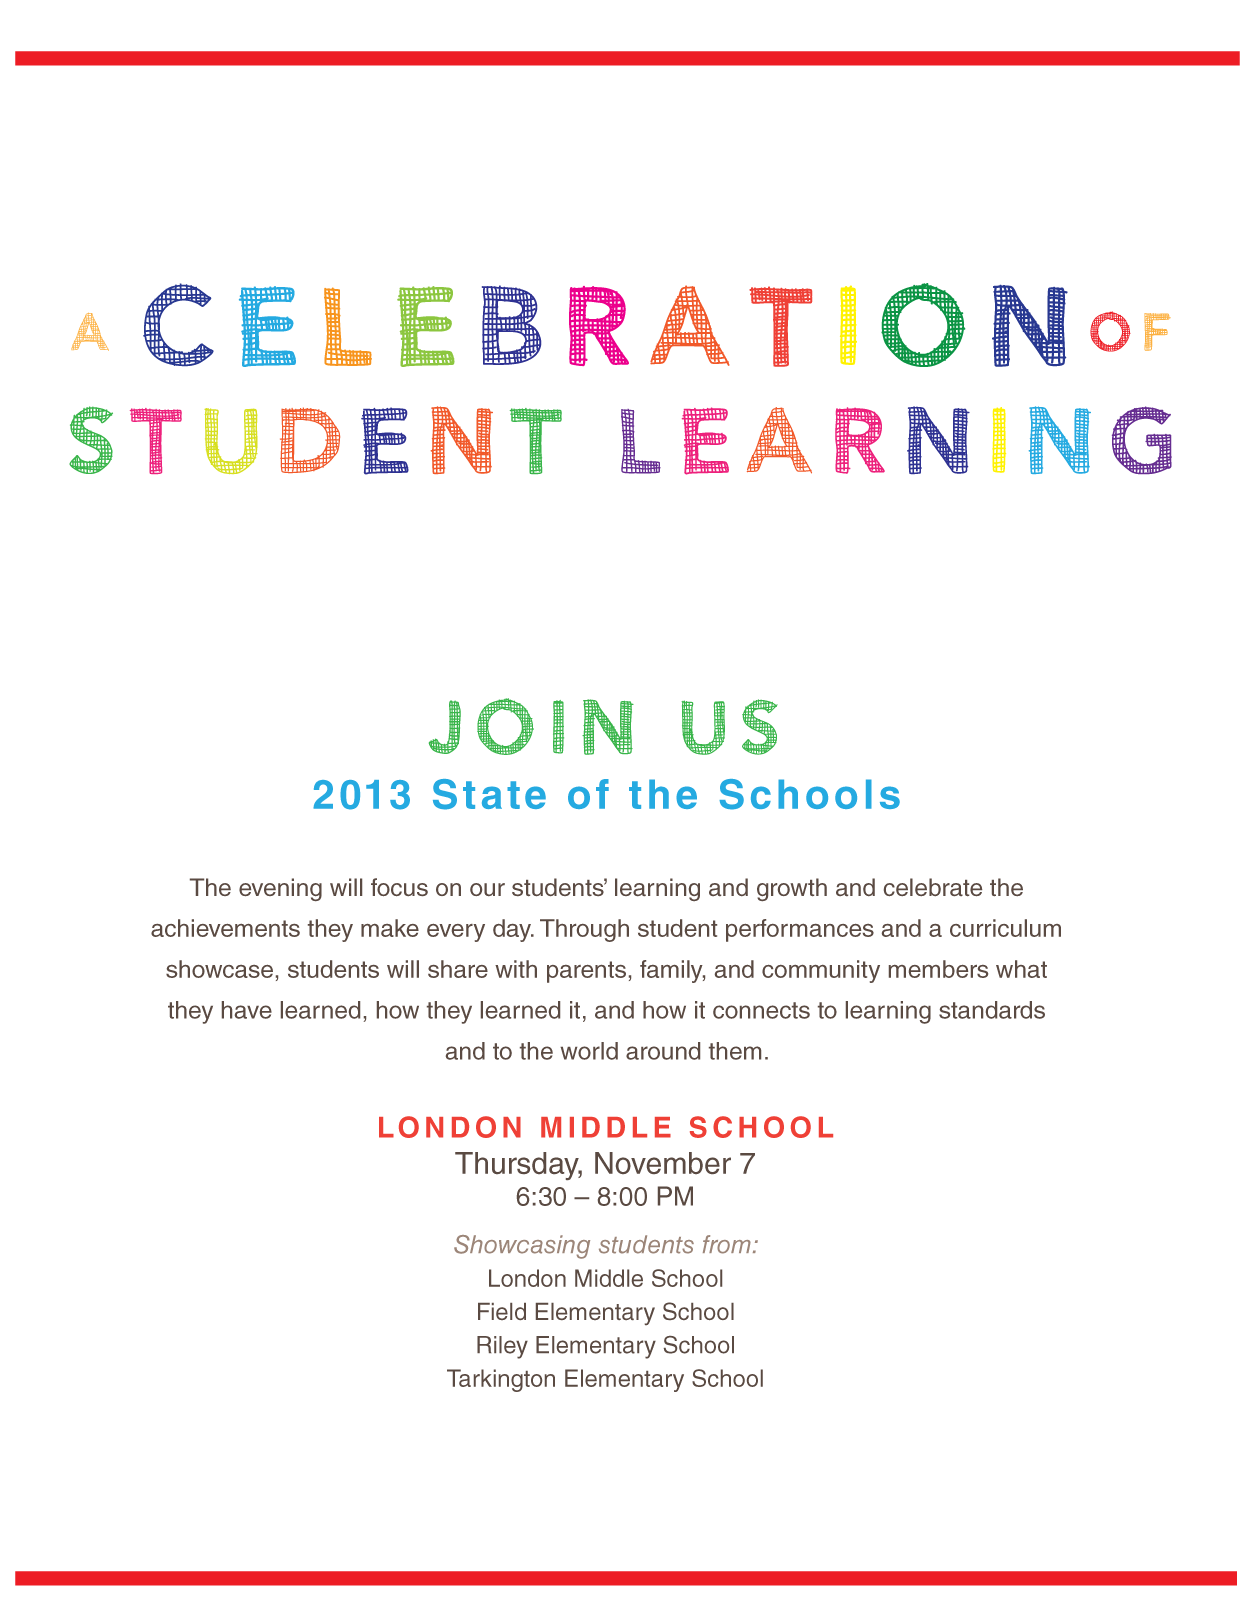 STATE OF SCHOOLS FLYER